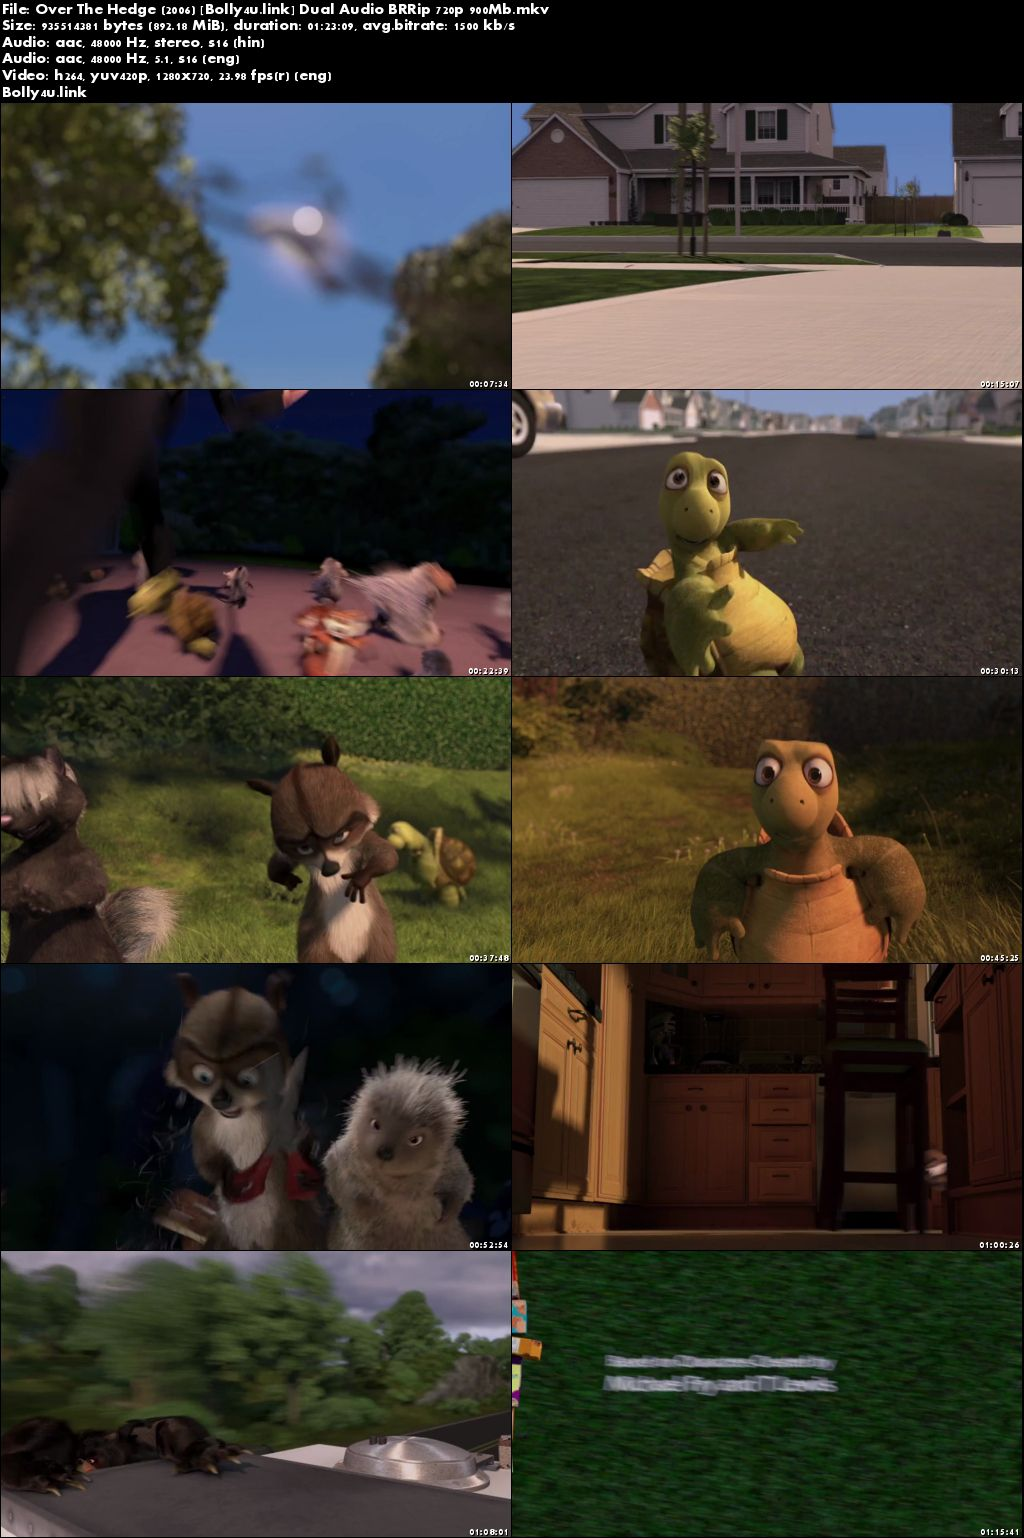 Over The Hedge 2006 BRRip 280Mb Hindi Dual Audio 480p Download